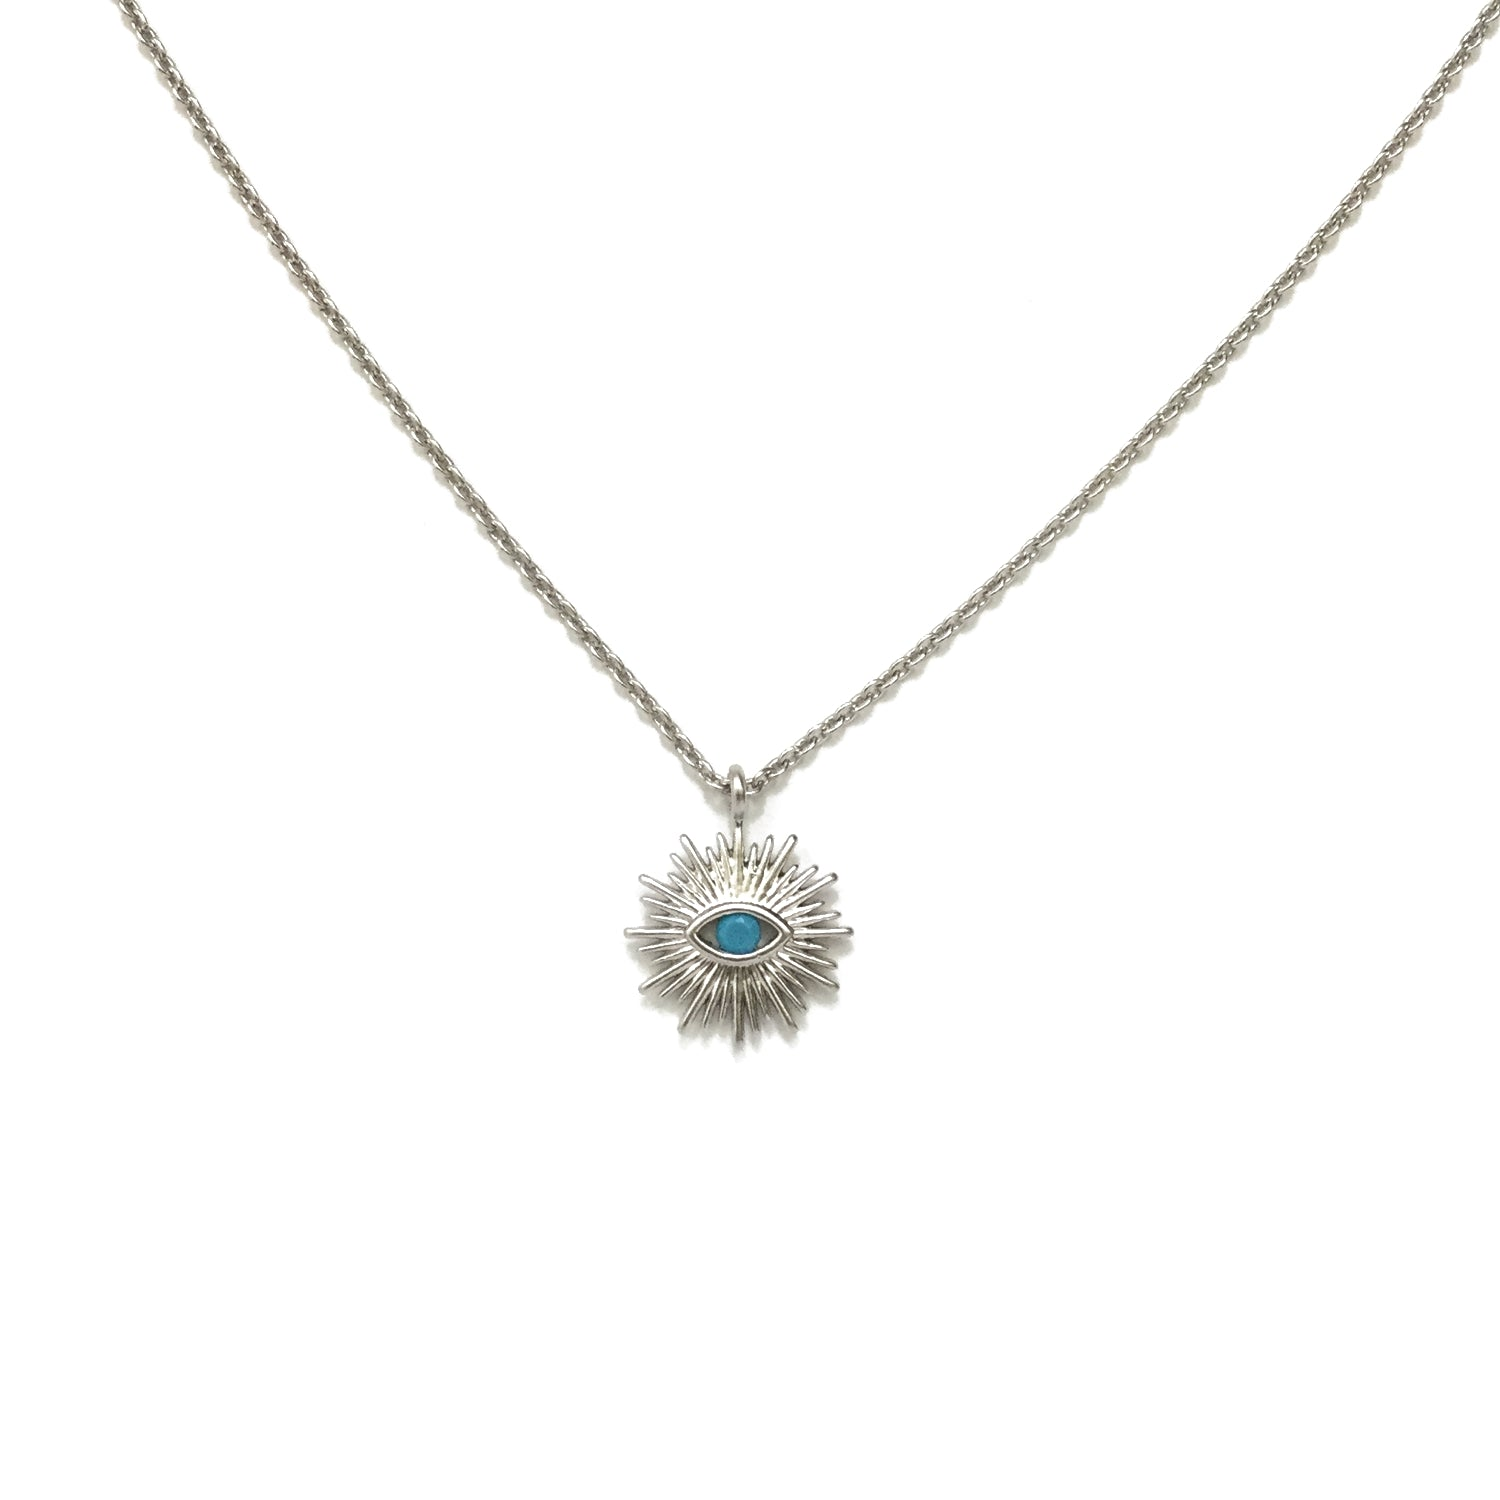 Silver plated evil eye and turquoise starburst necklace